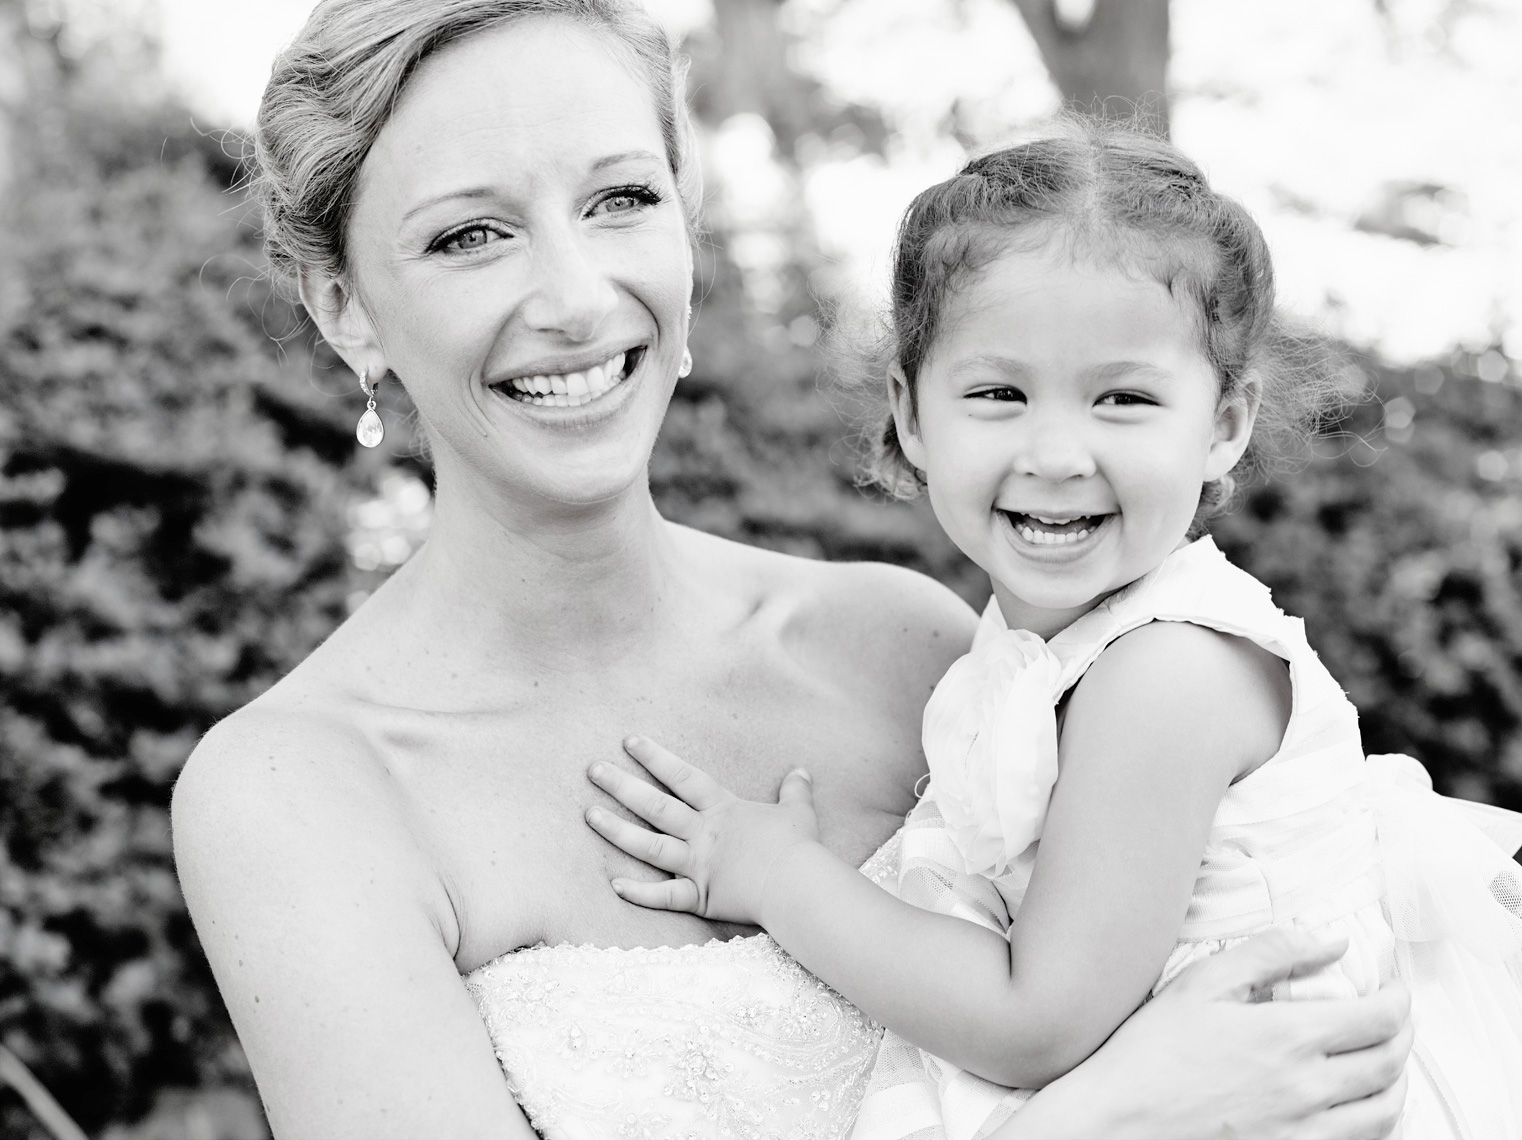 Bride with Flower girl after wedding ceremony at private residence in Palo Alto, California